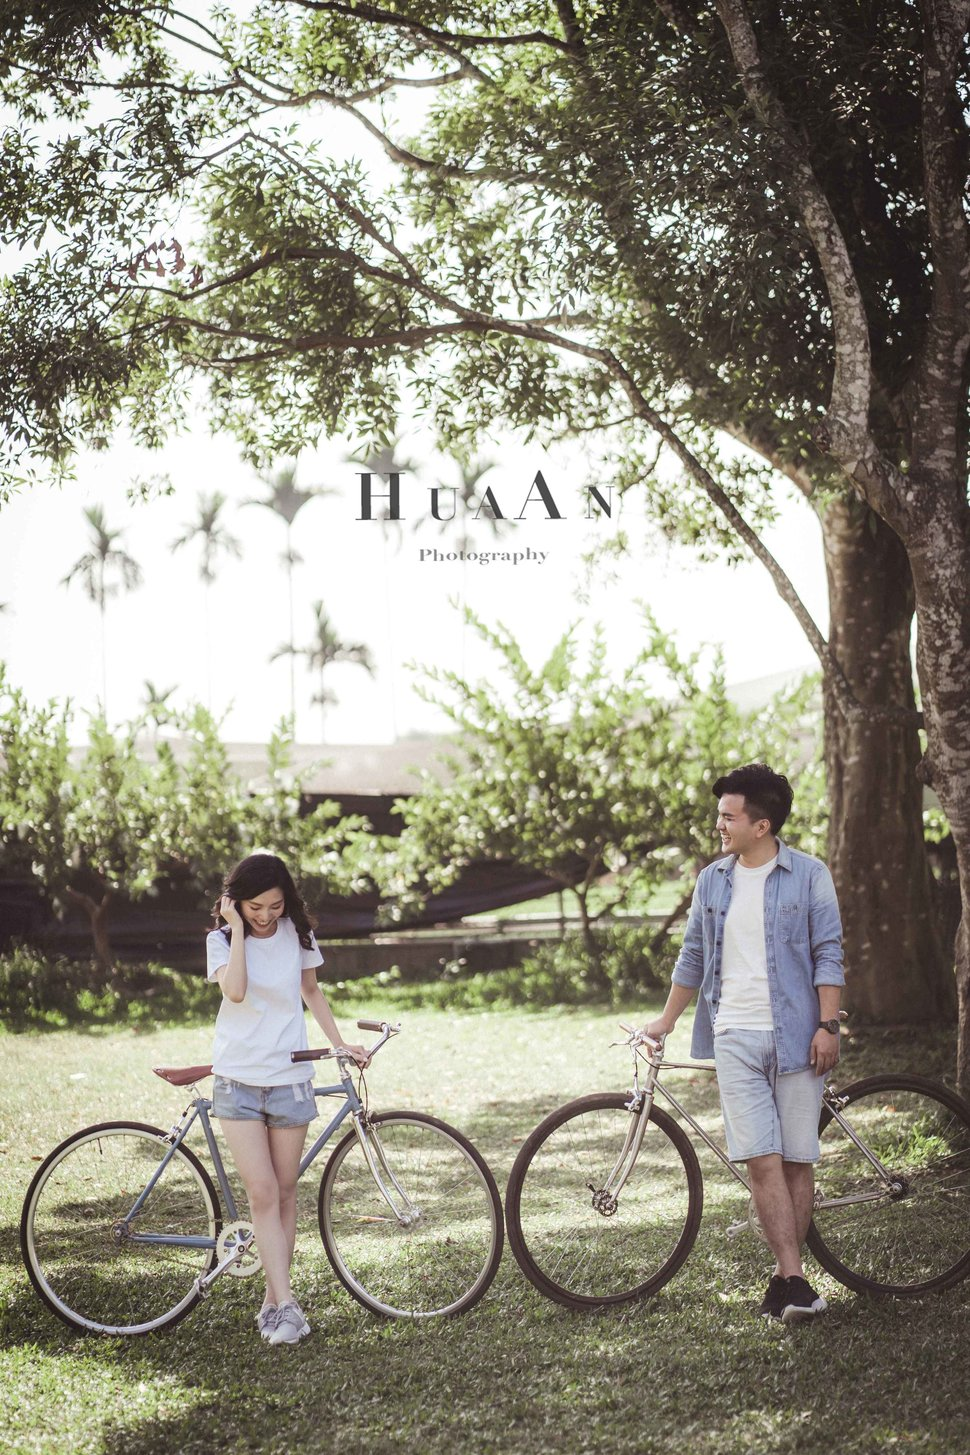 DSC04109 - Huaan Photography《結婚吧》